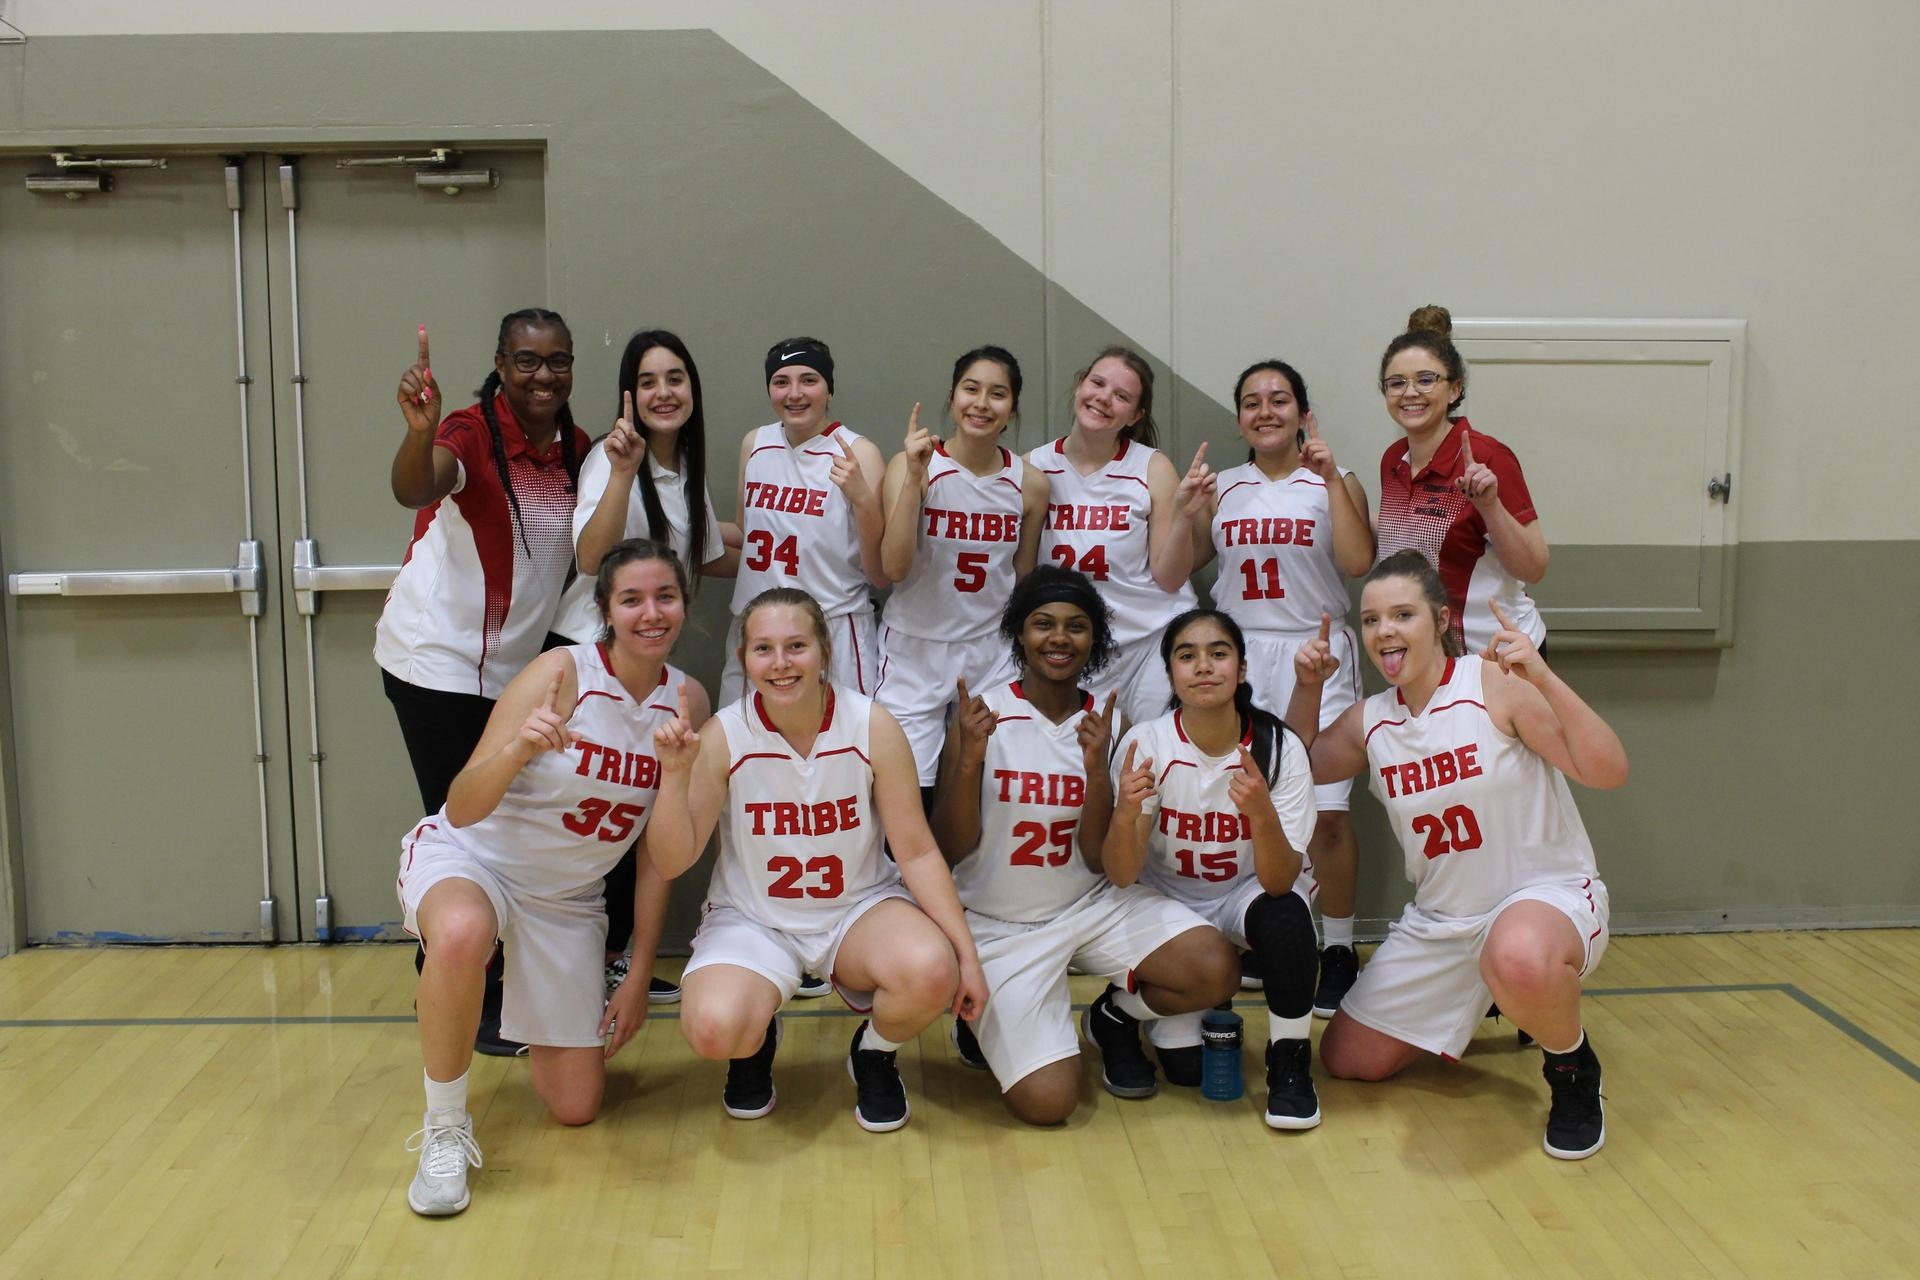 JV Girls pose after winning the NSL Basketball Championship